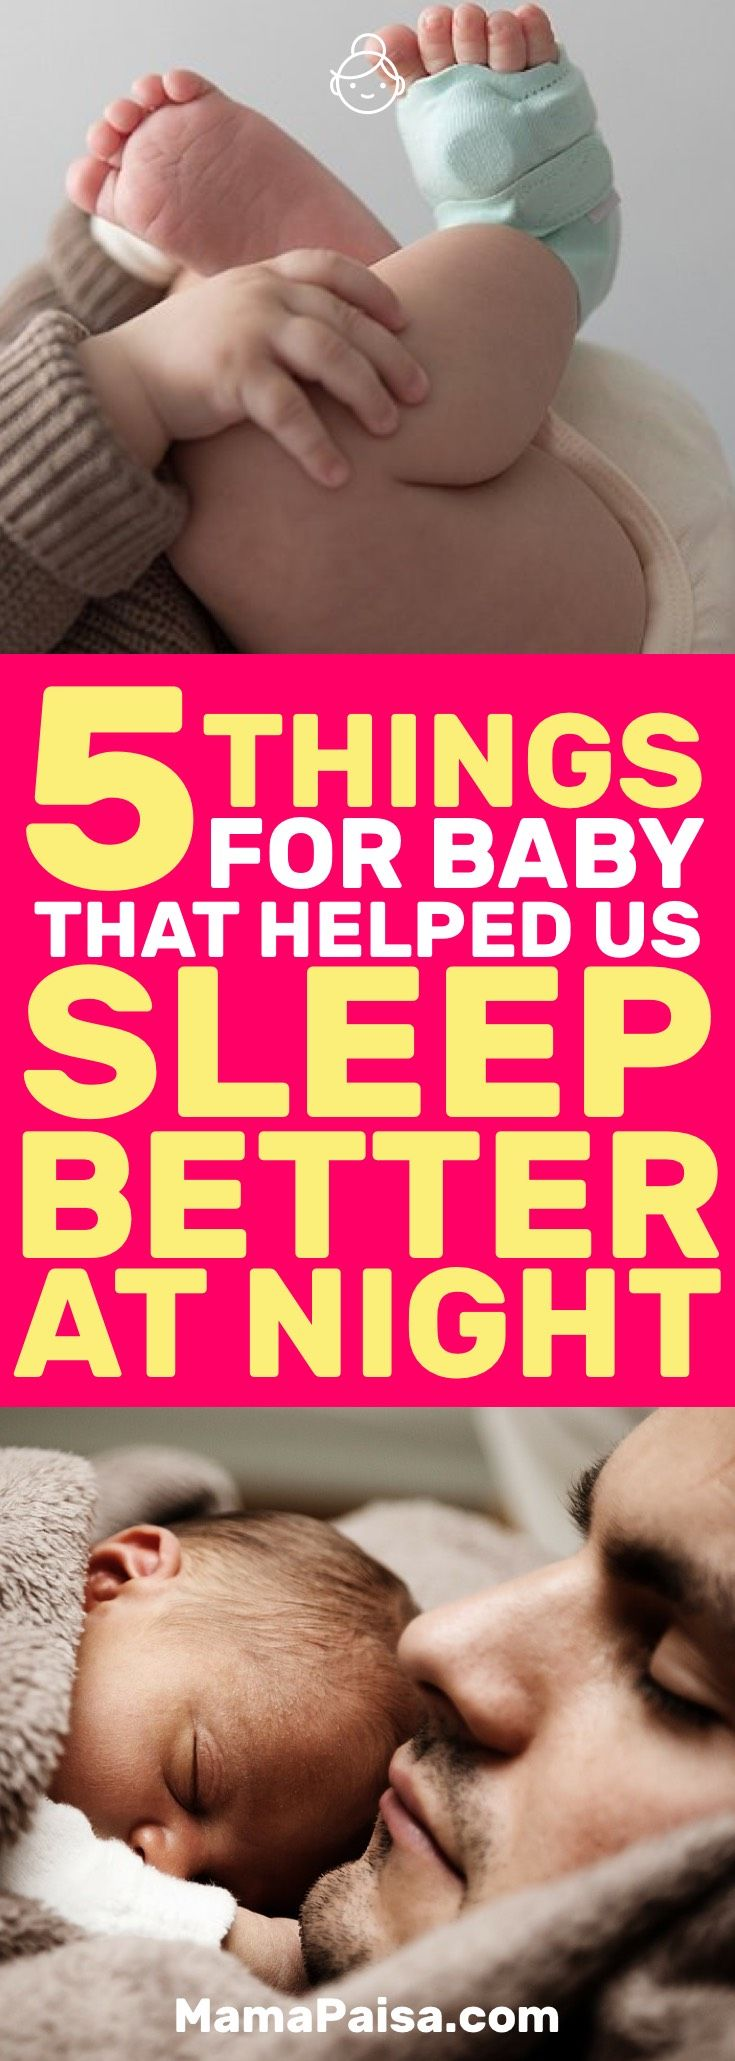 Baby getting sleep is important. You getting sleep is just as important. Here are 5 things that helped me get better sleep with baby.